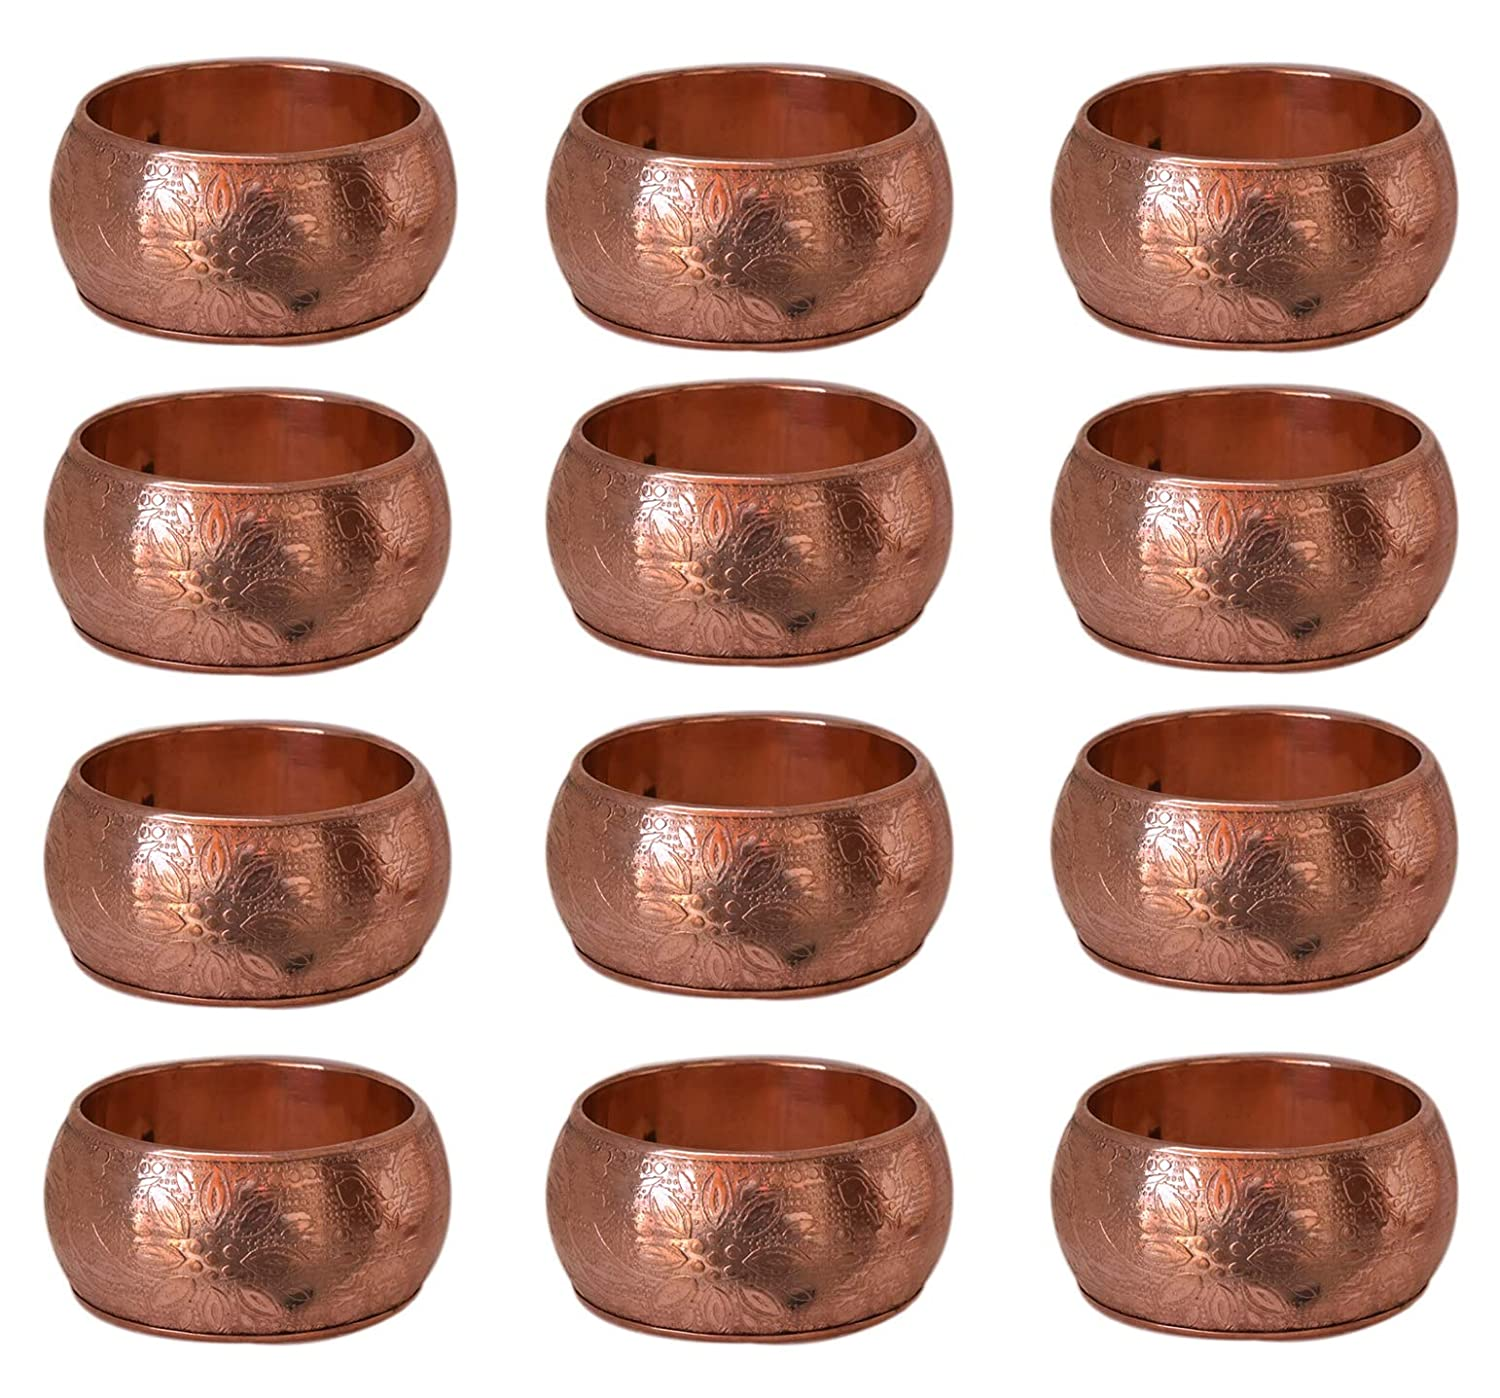 Wedding Receptions Dinner or Holiday Parties Basic Everyday Floral Napkin Rings for Place Settings Family Gatherings Copper, Pack of 4